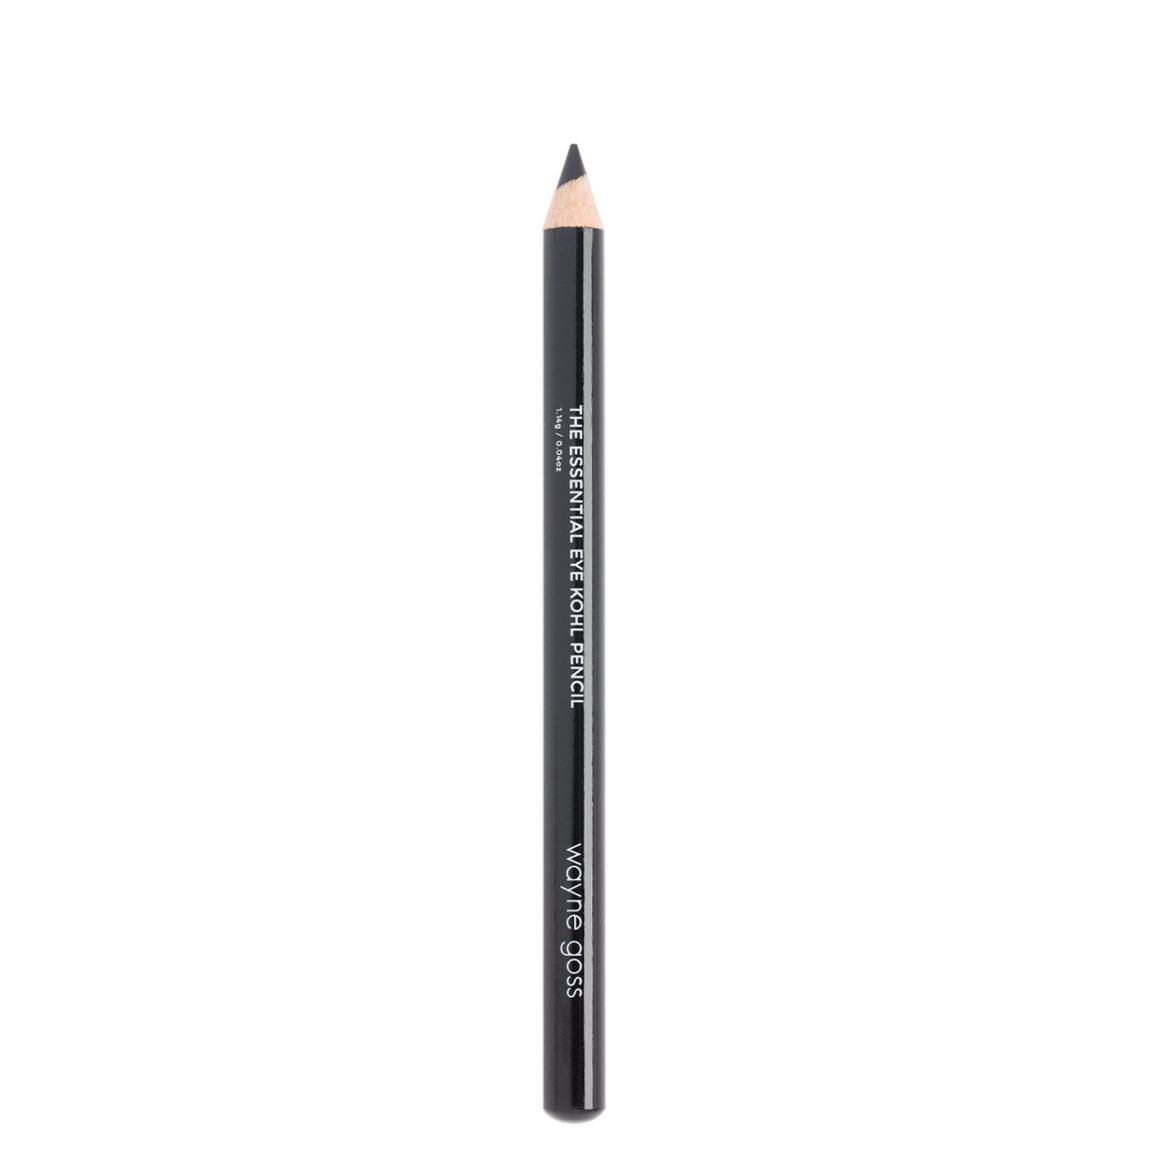 Wayne Goss The Essential Eye Kohl Pencil Obsidian alternative view 1.